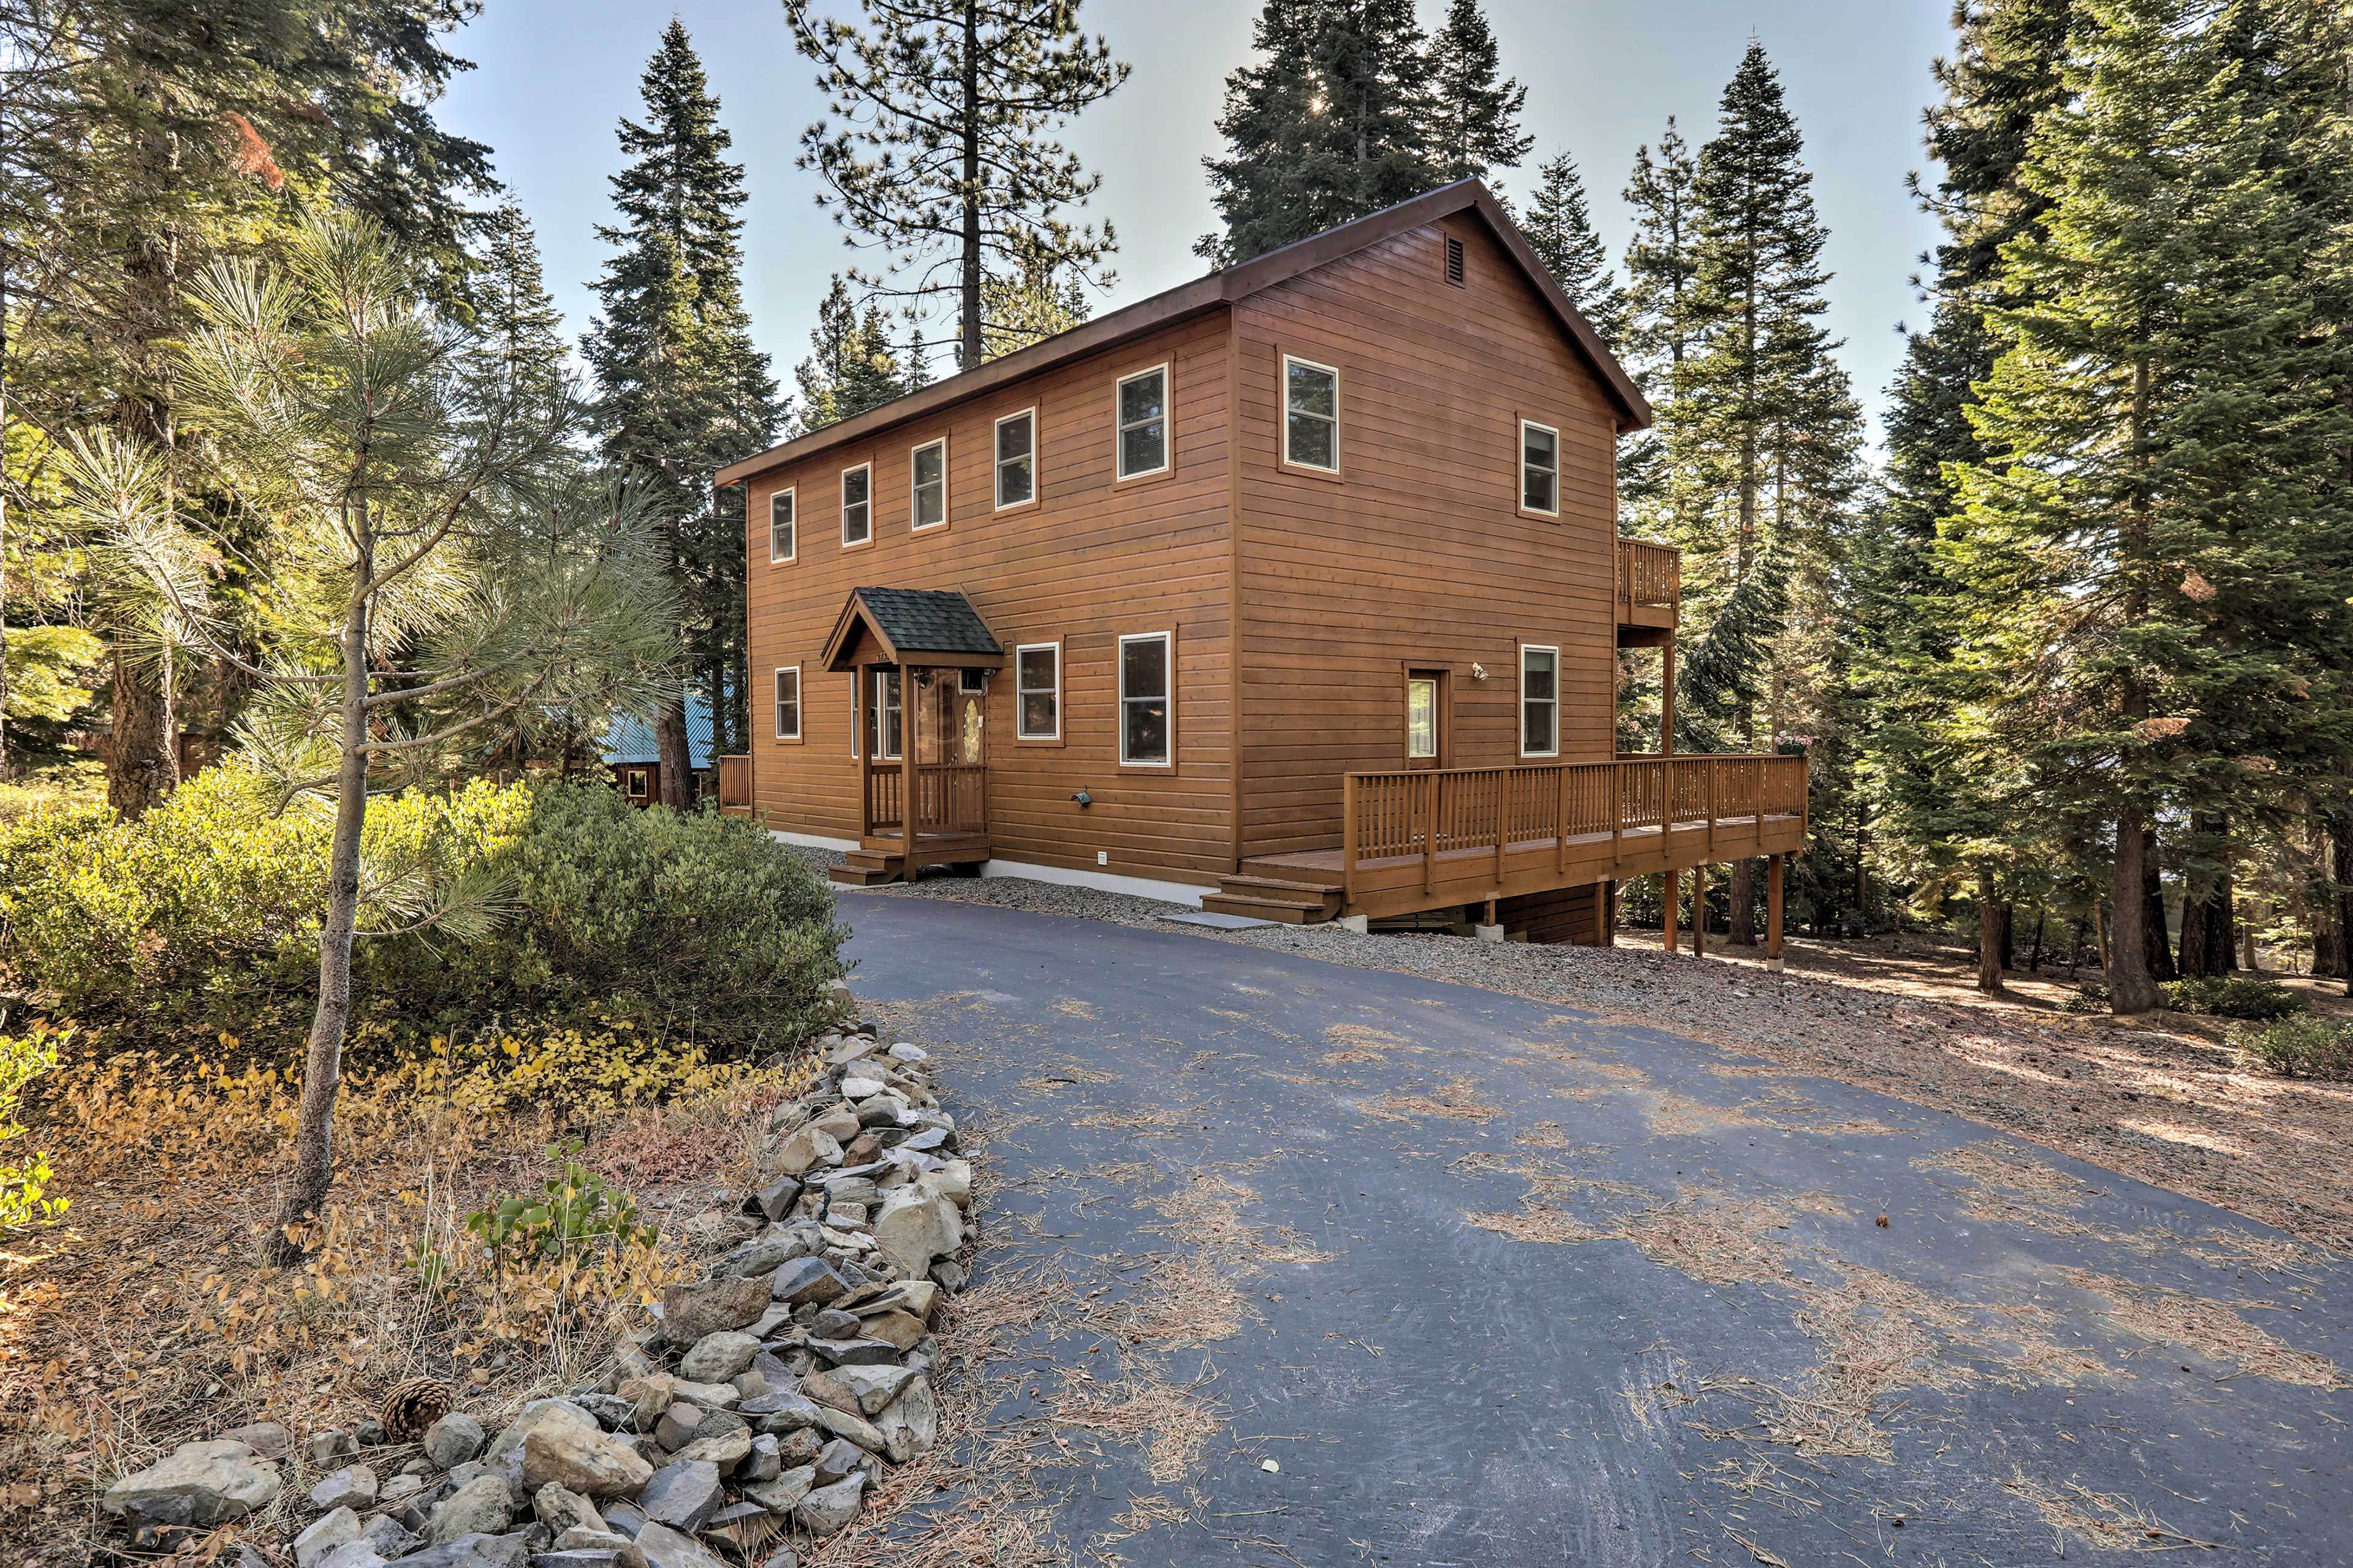 You can't beat this lovely Lake Tahoe vacation rental home.